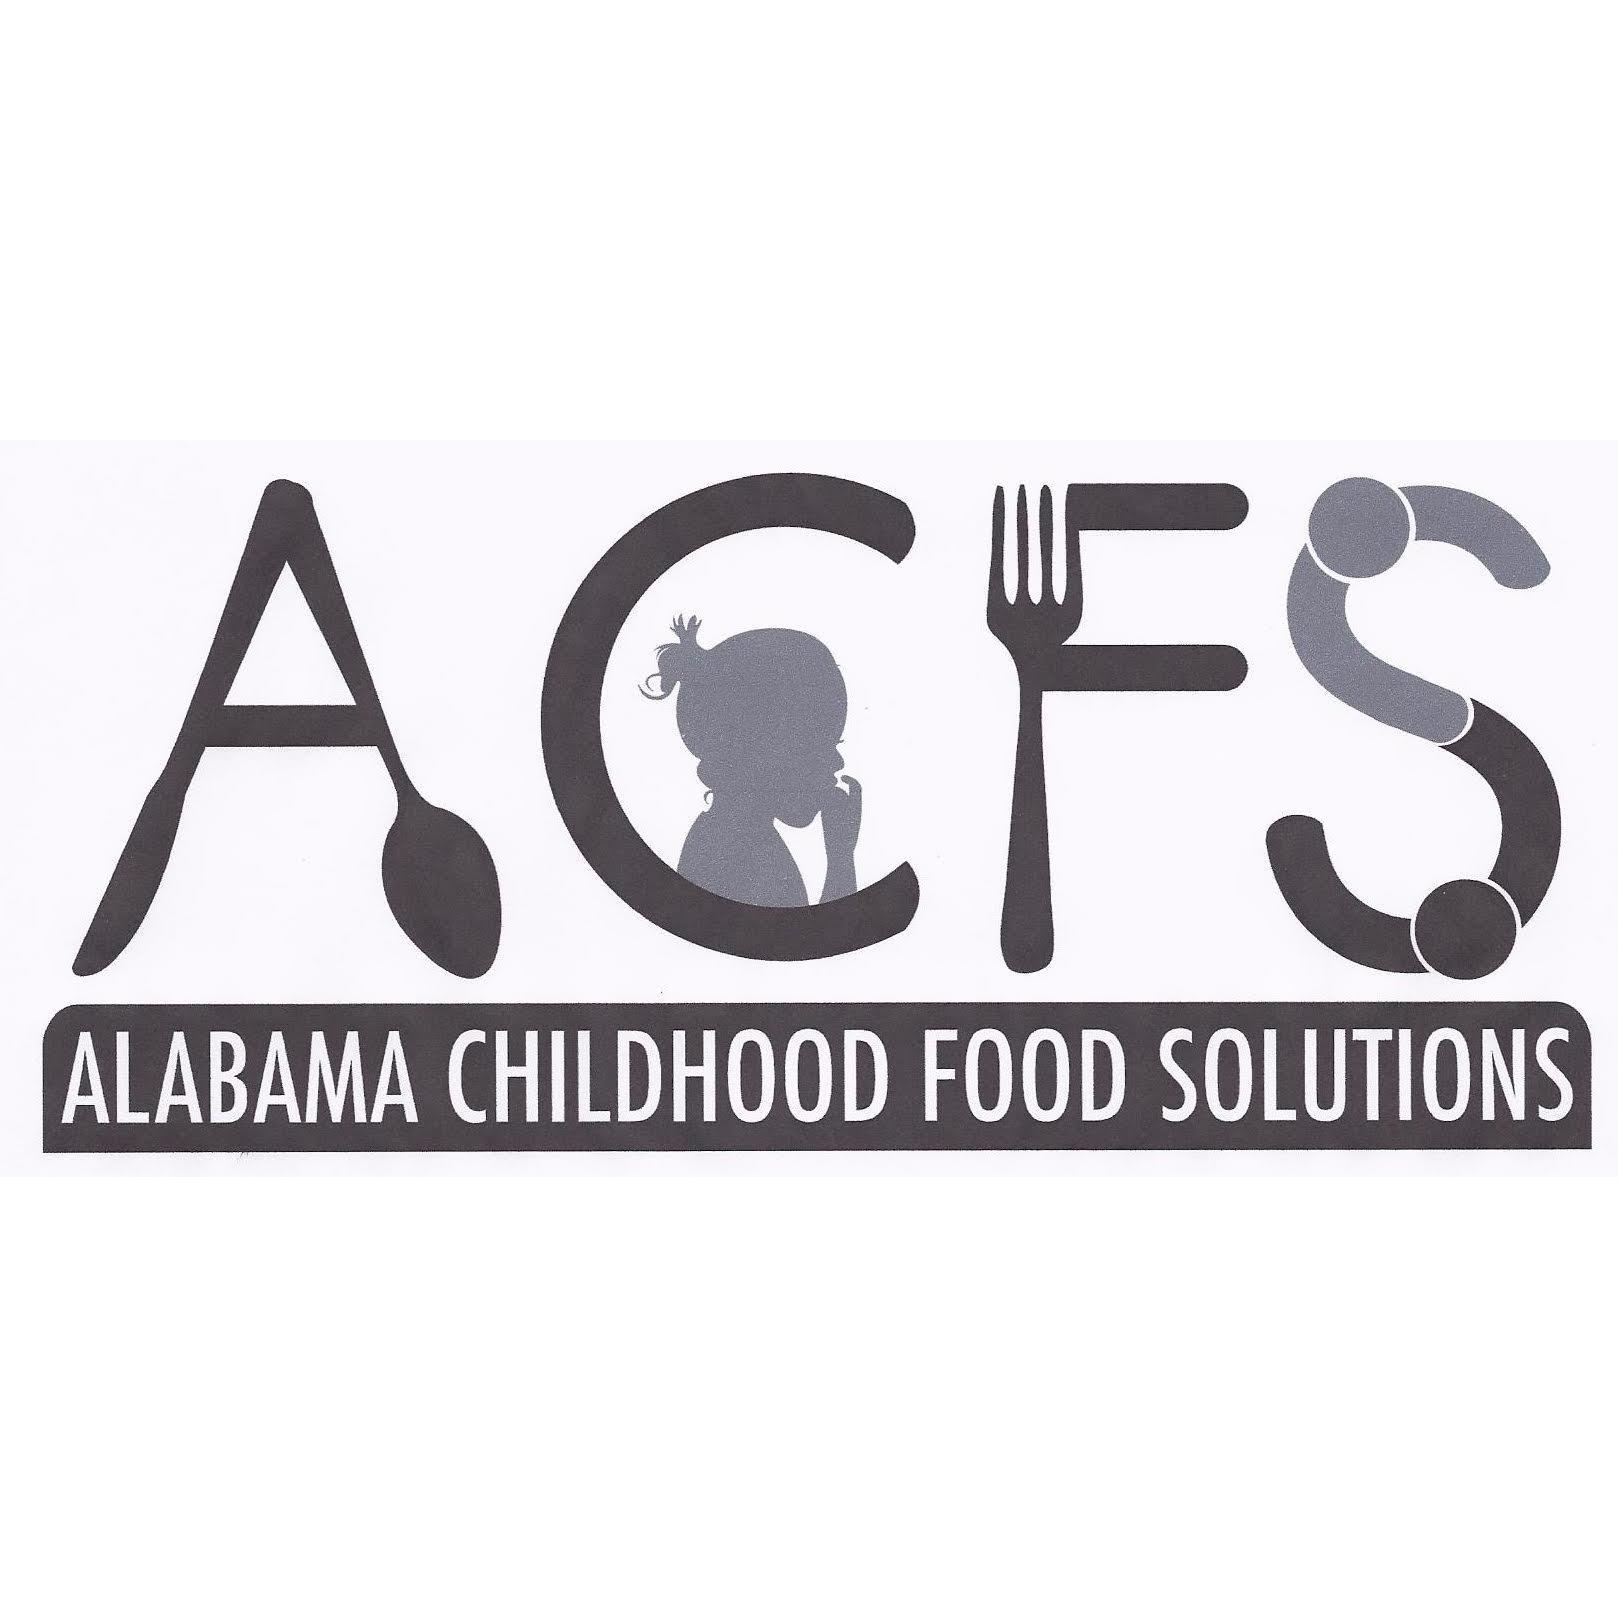 Alabama Childhood Food Solutions